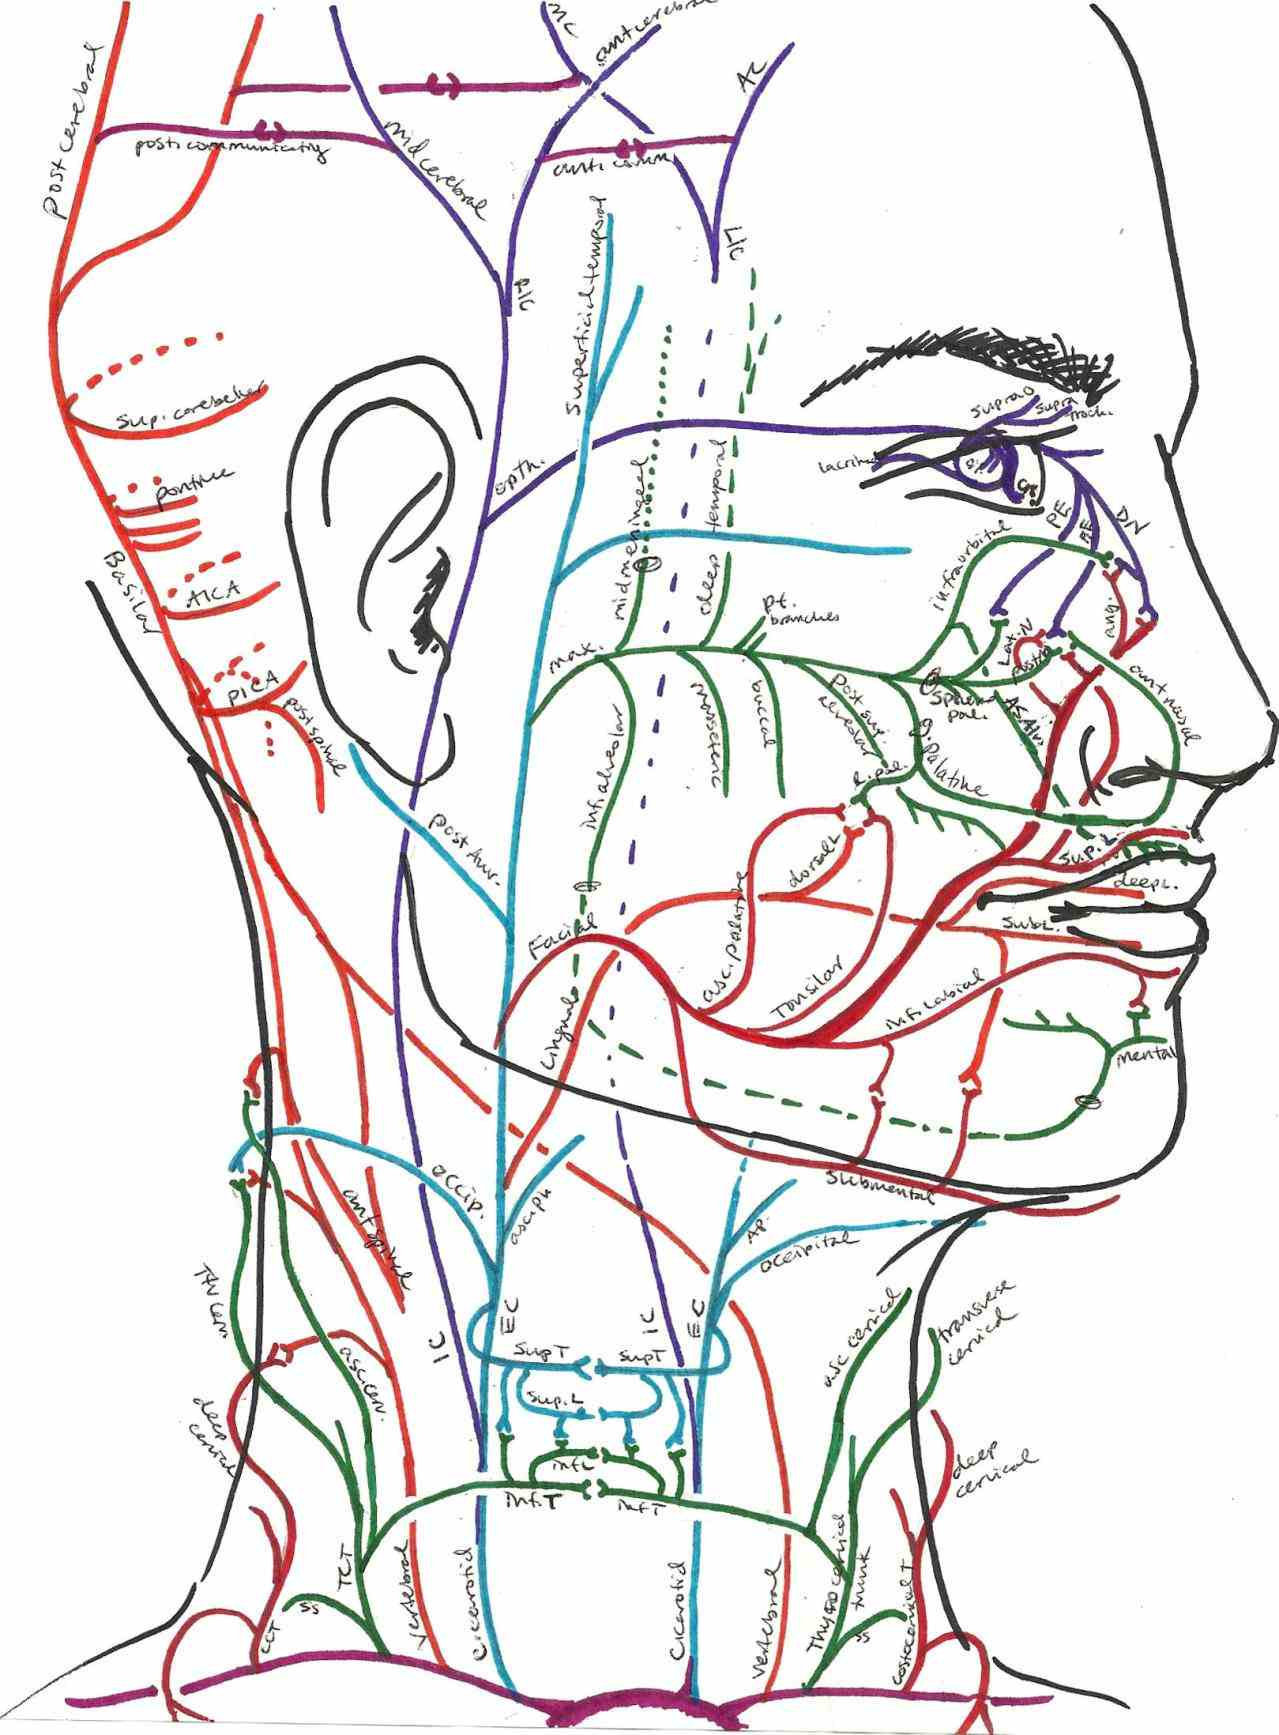 human head and neck muscle diagram labeled 1990 jeep wrangler wiring illustration pictures wallpapers